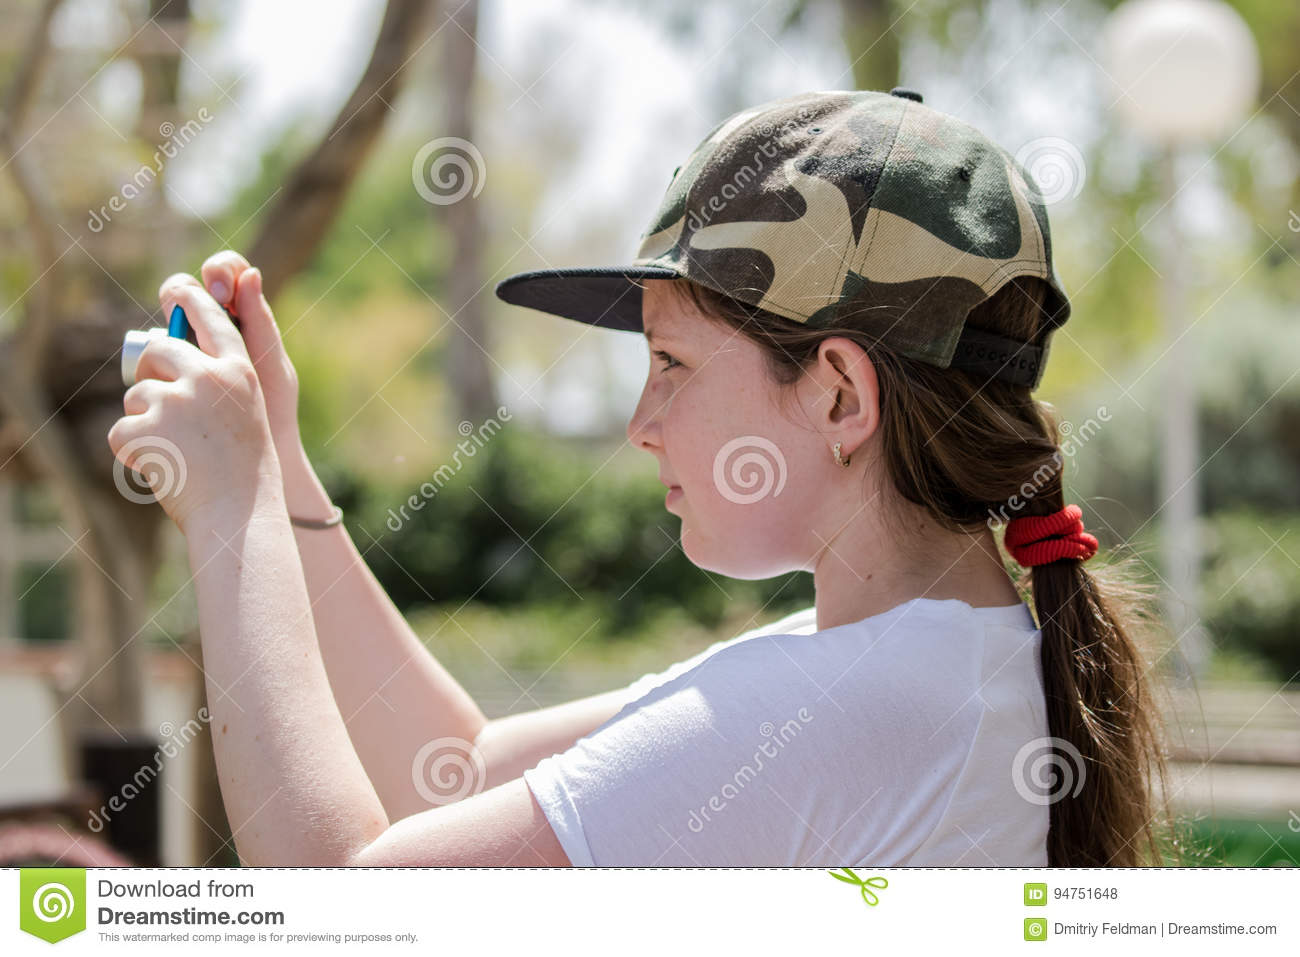 Girl stands on a sunny day and learns to take pictures with a camera